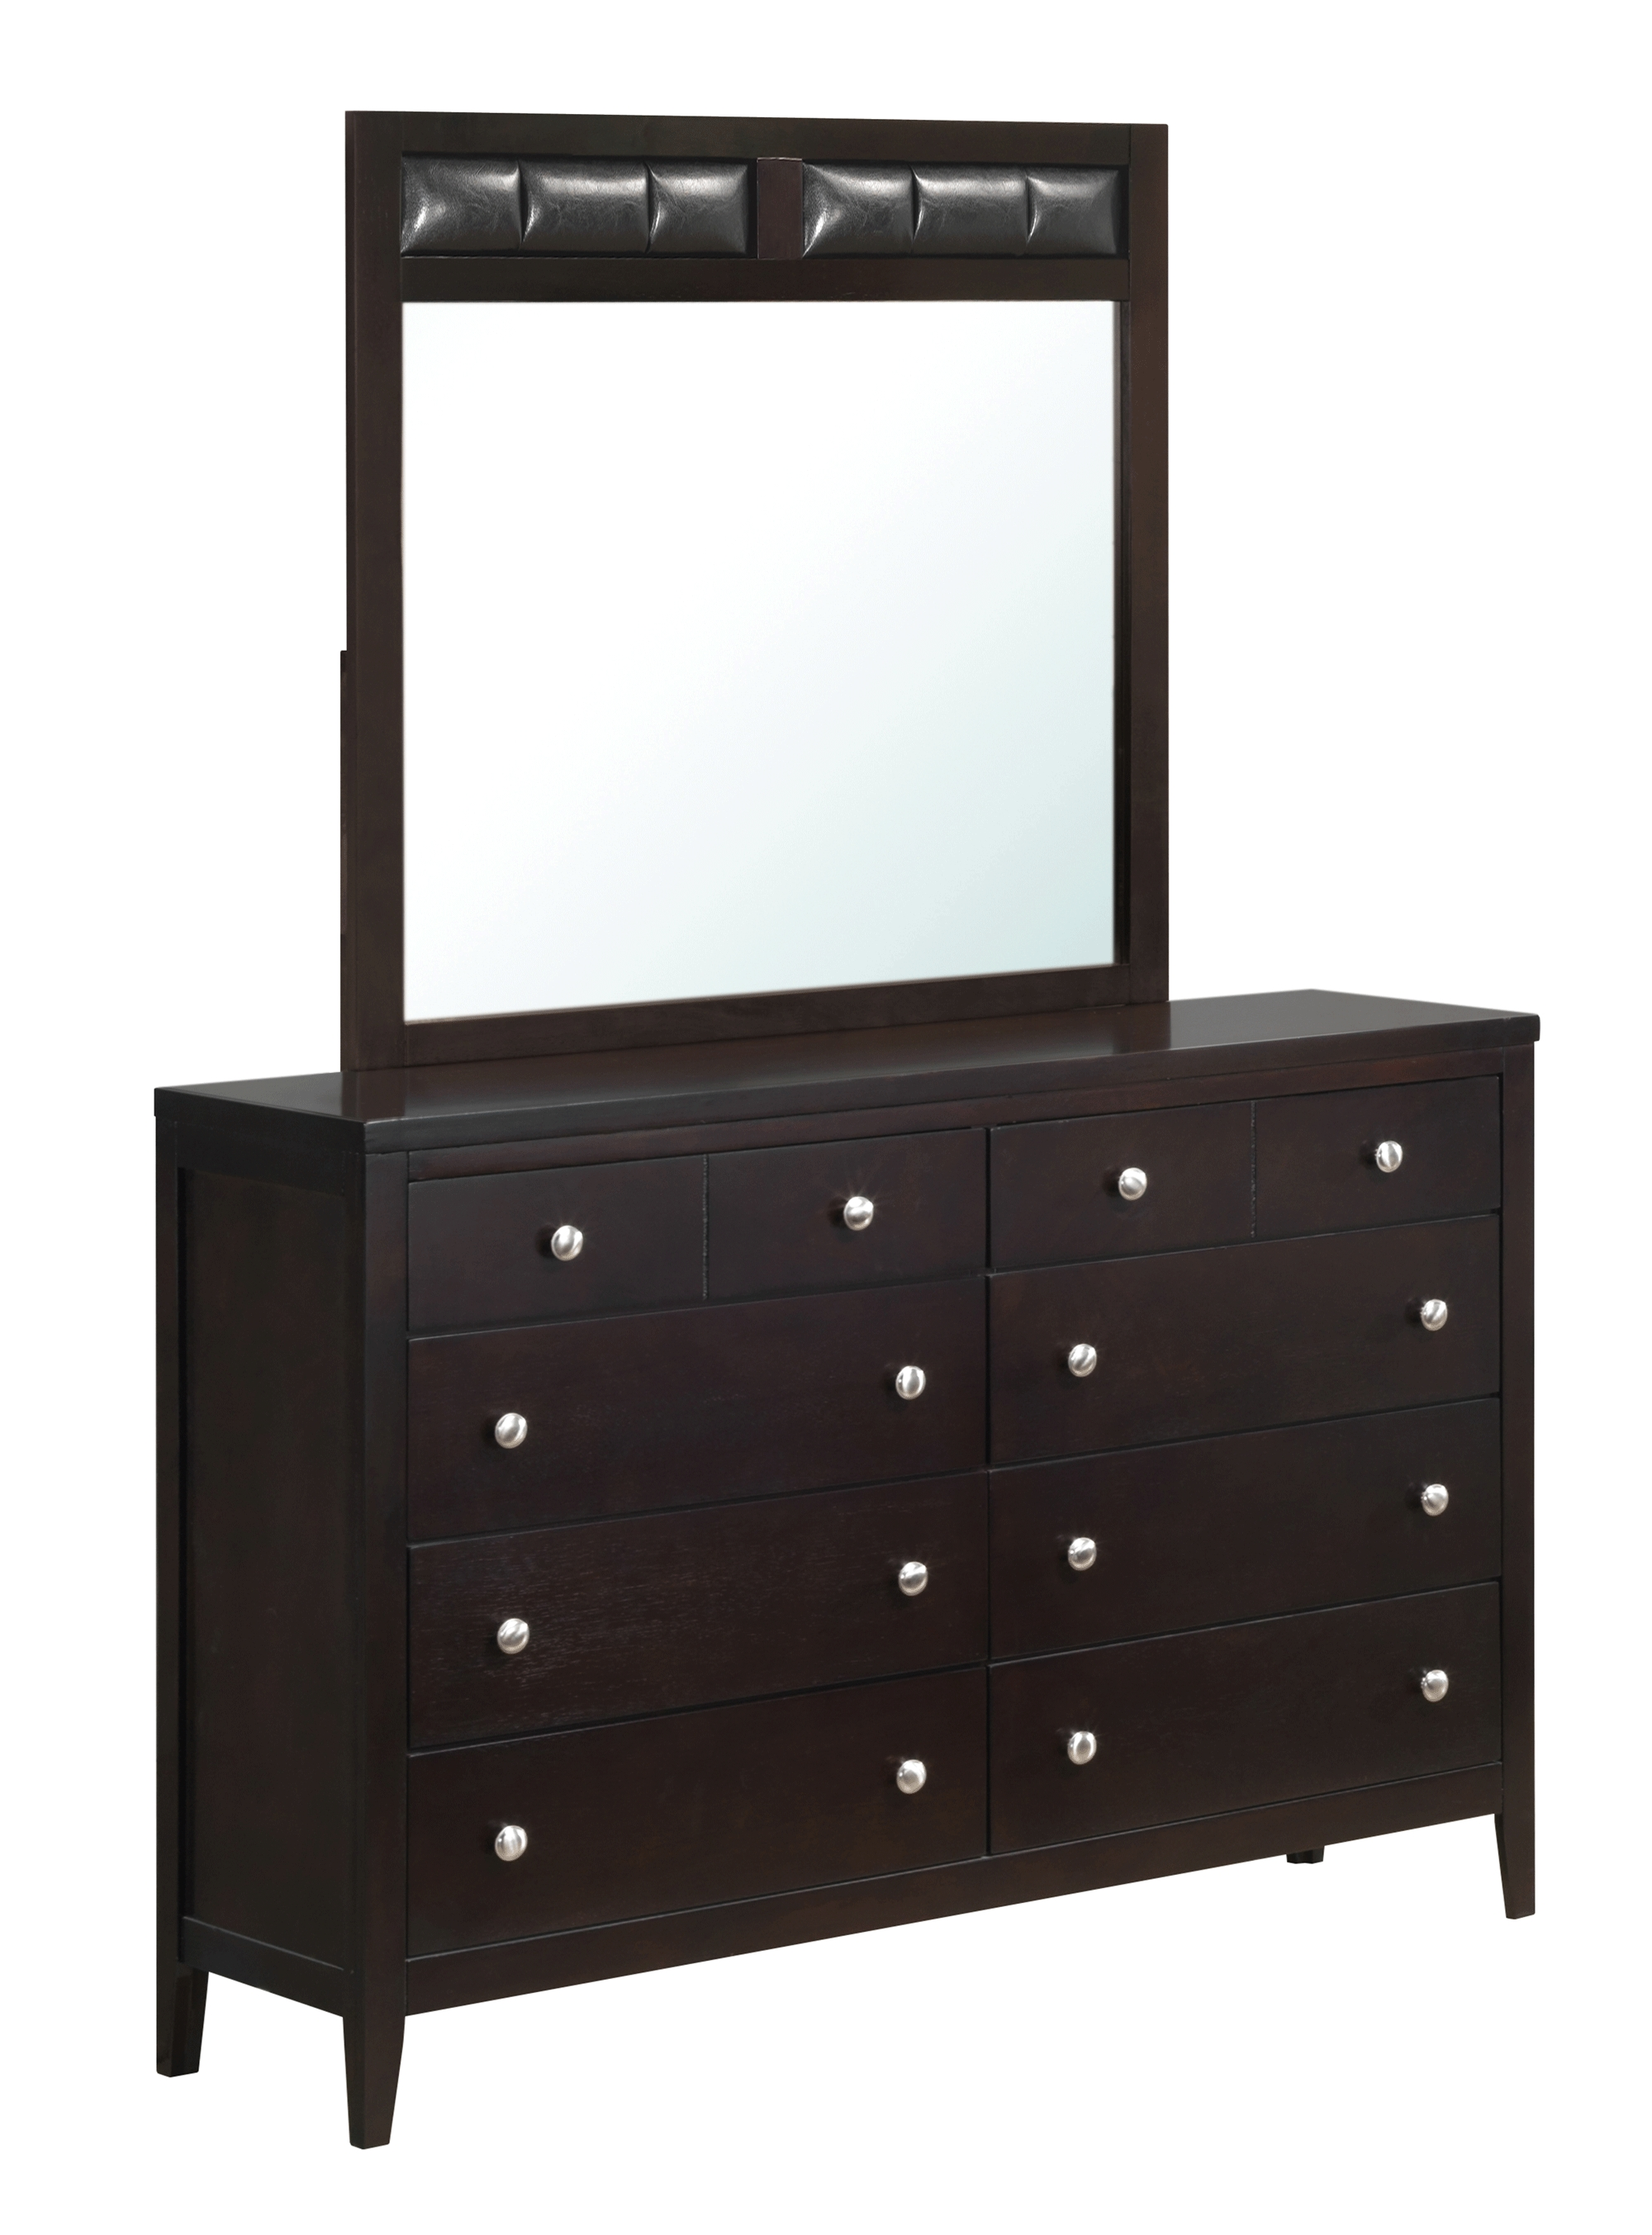 Rosa Antique Black Mirror Global Furniture Inside Antique Black Mirror (Image 12 of 15)